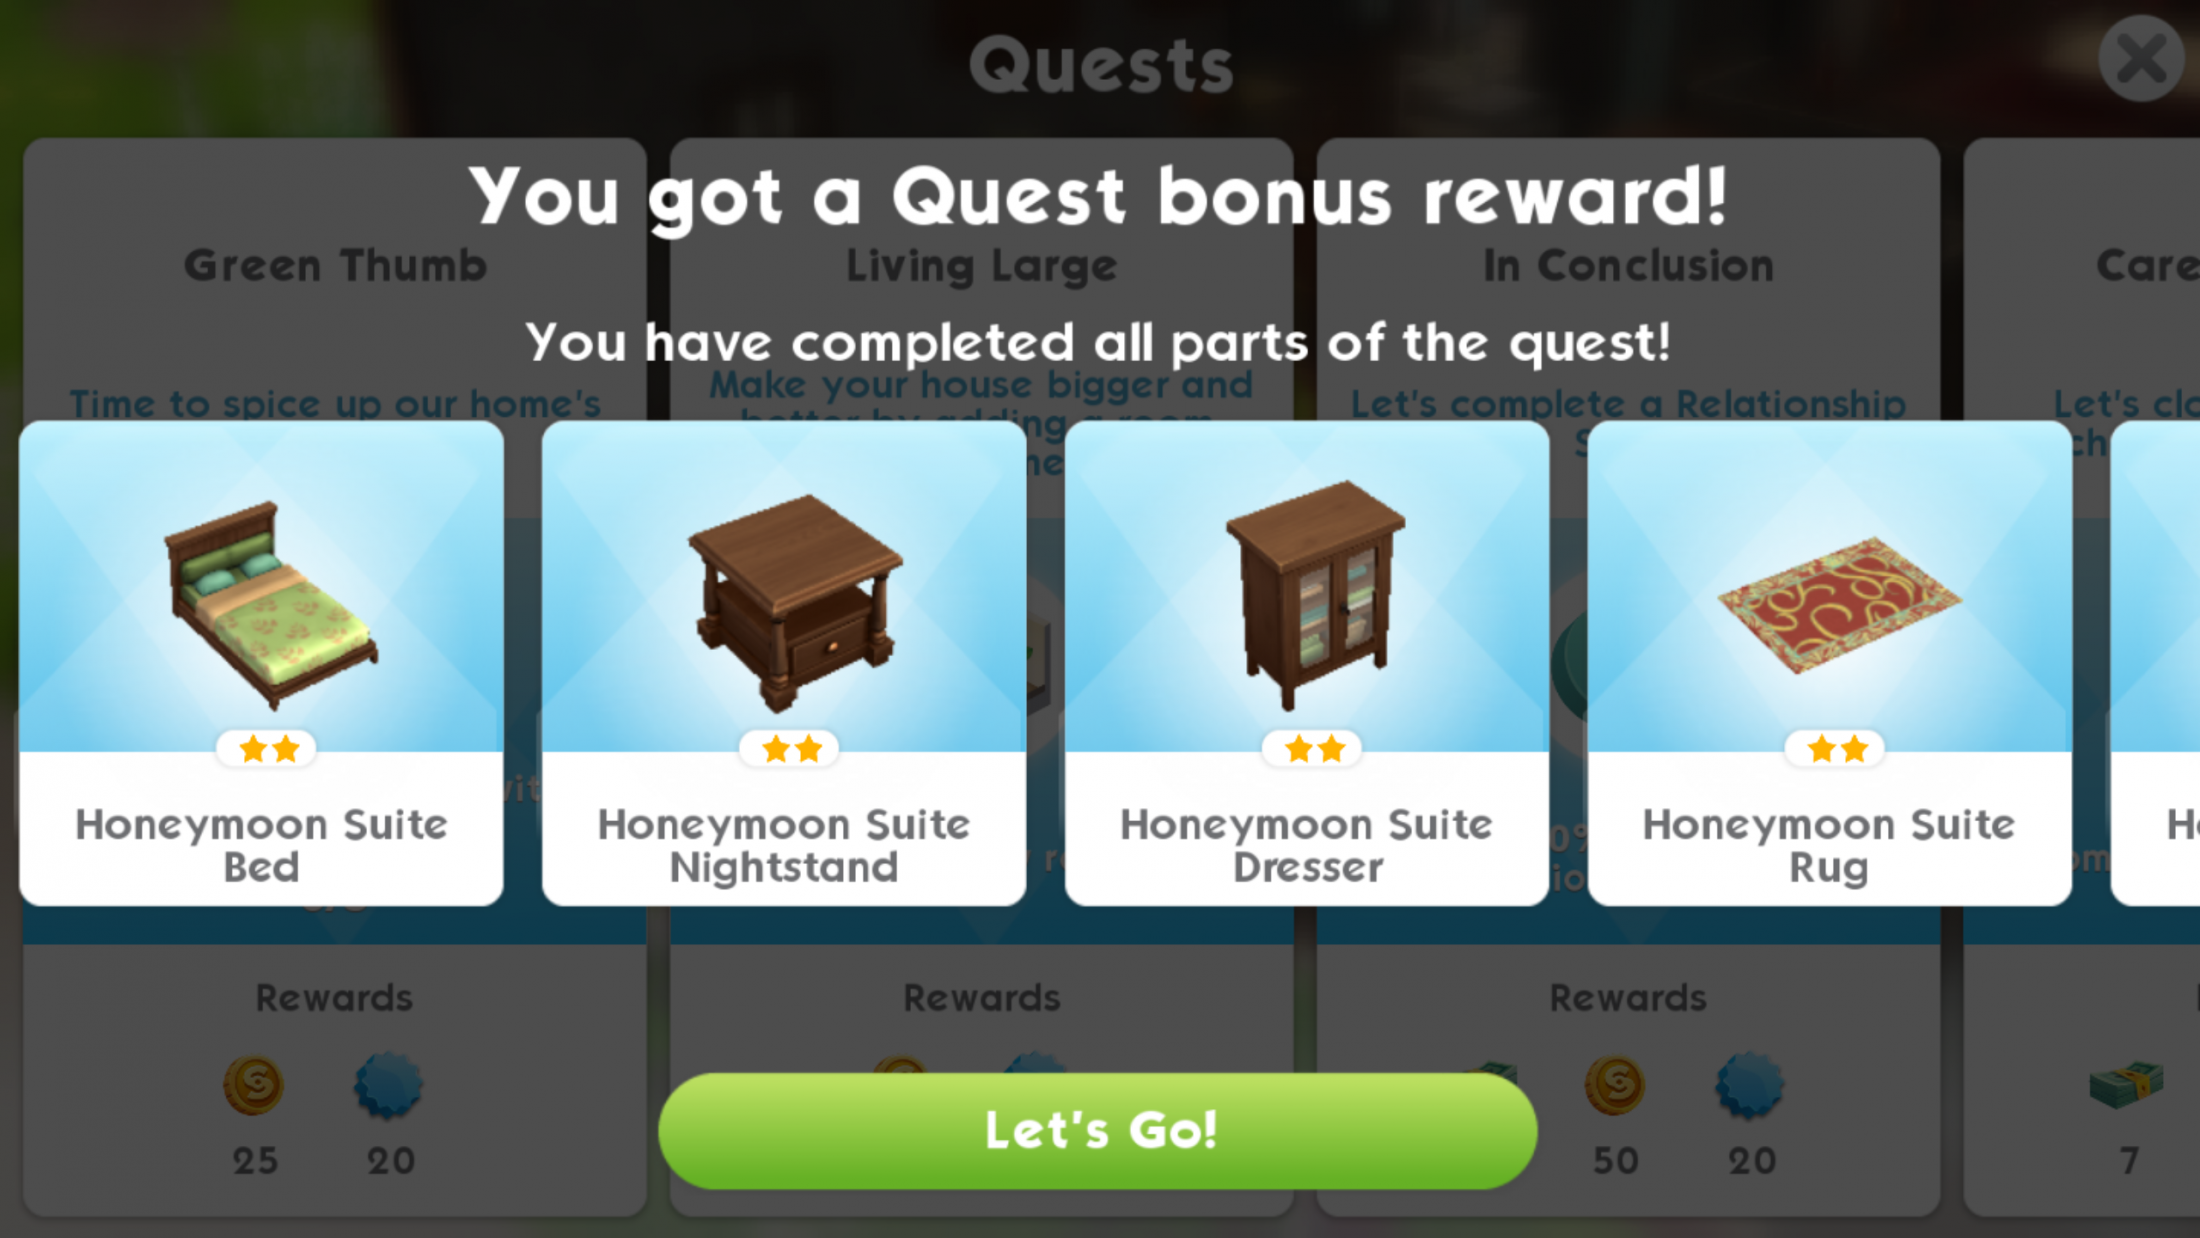 40_Rewards.png